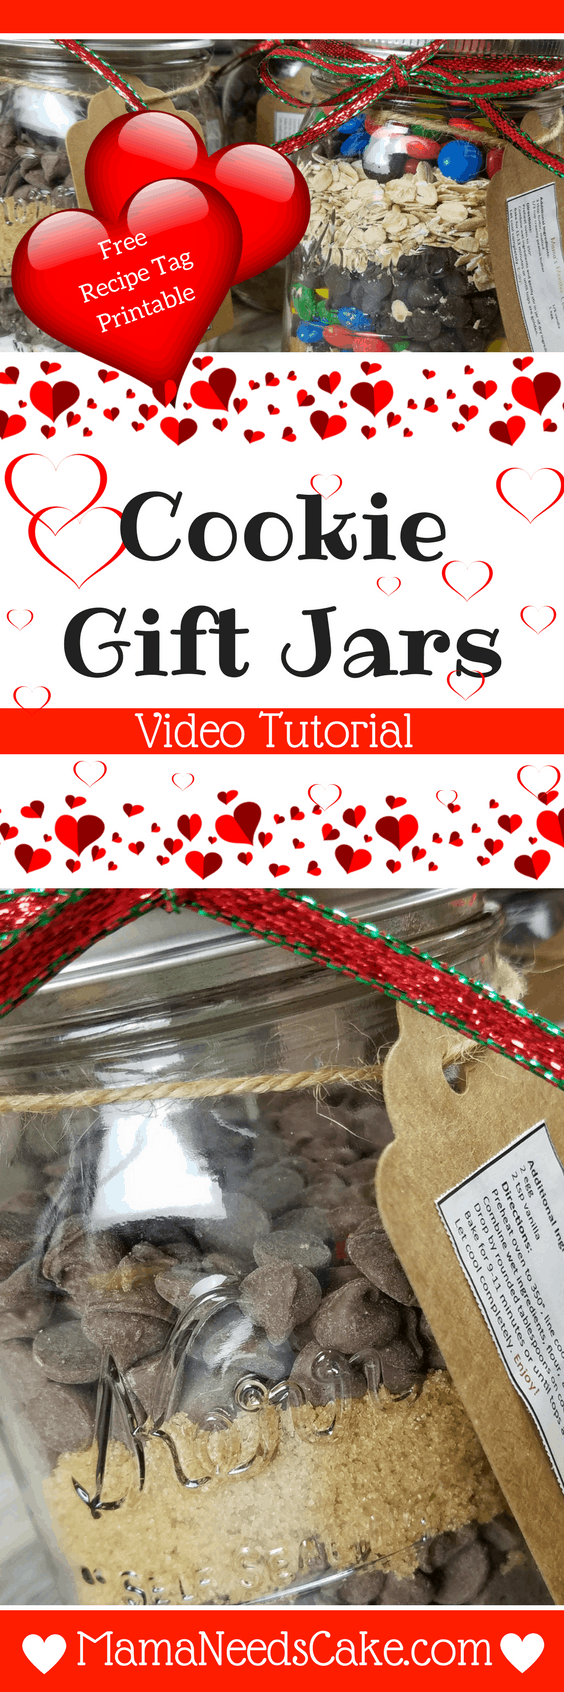 Cookie Gift Jar Recipes 3